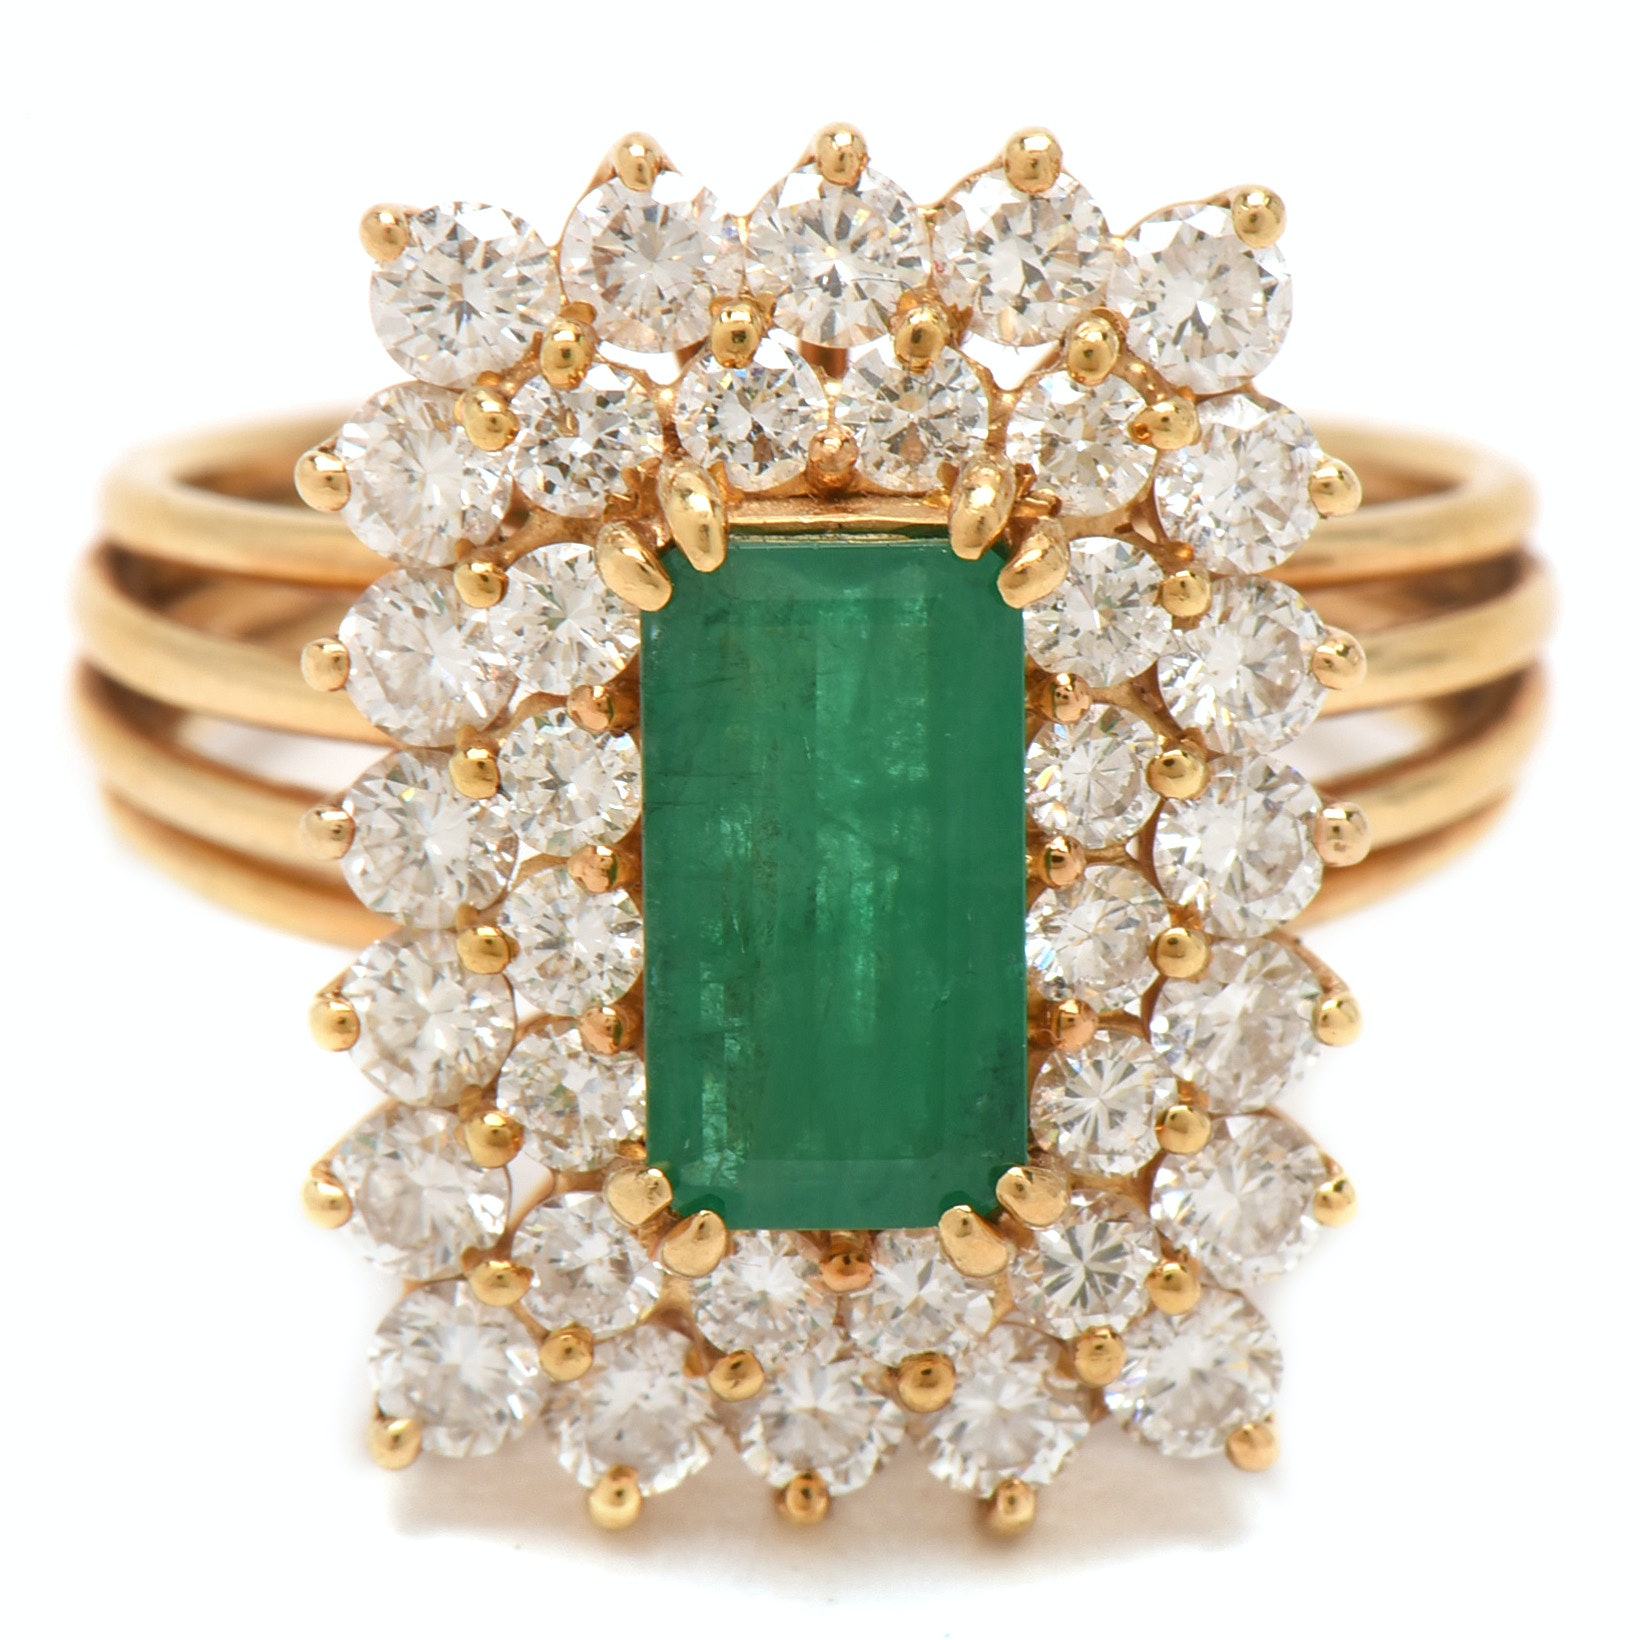 18K Yellow Gold 1.14 Carat Emerald and 1.95 CTW Diamond Cocktail Ring